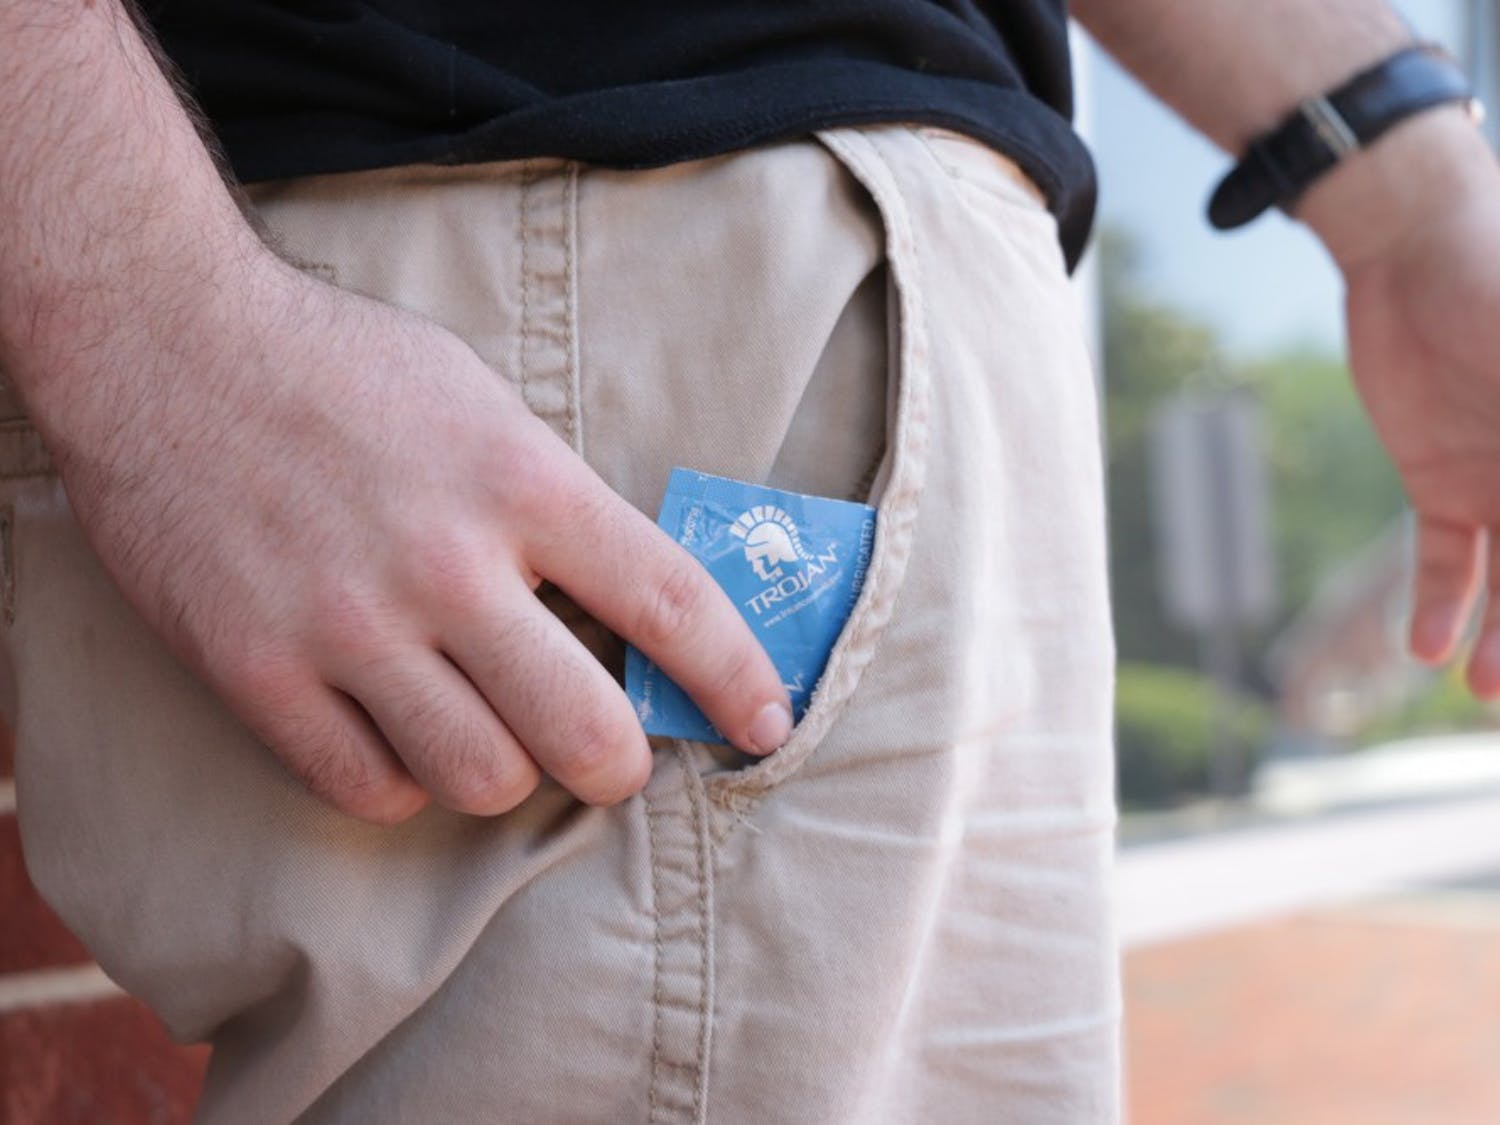 Photo illustration. A UNC student pulls a condom out of his pocket on Rosemary Street.